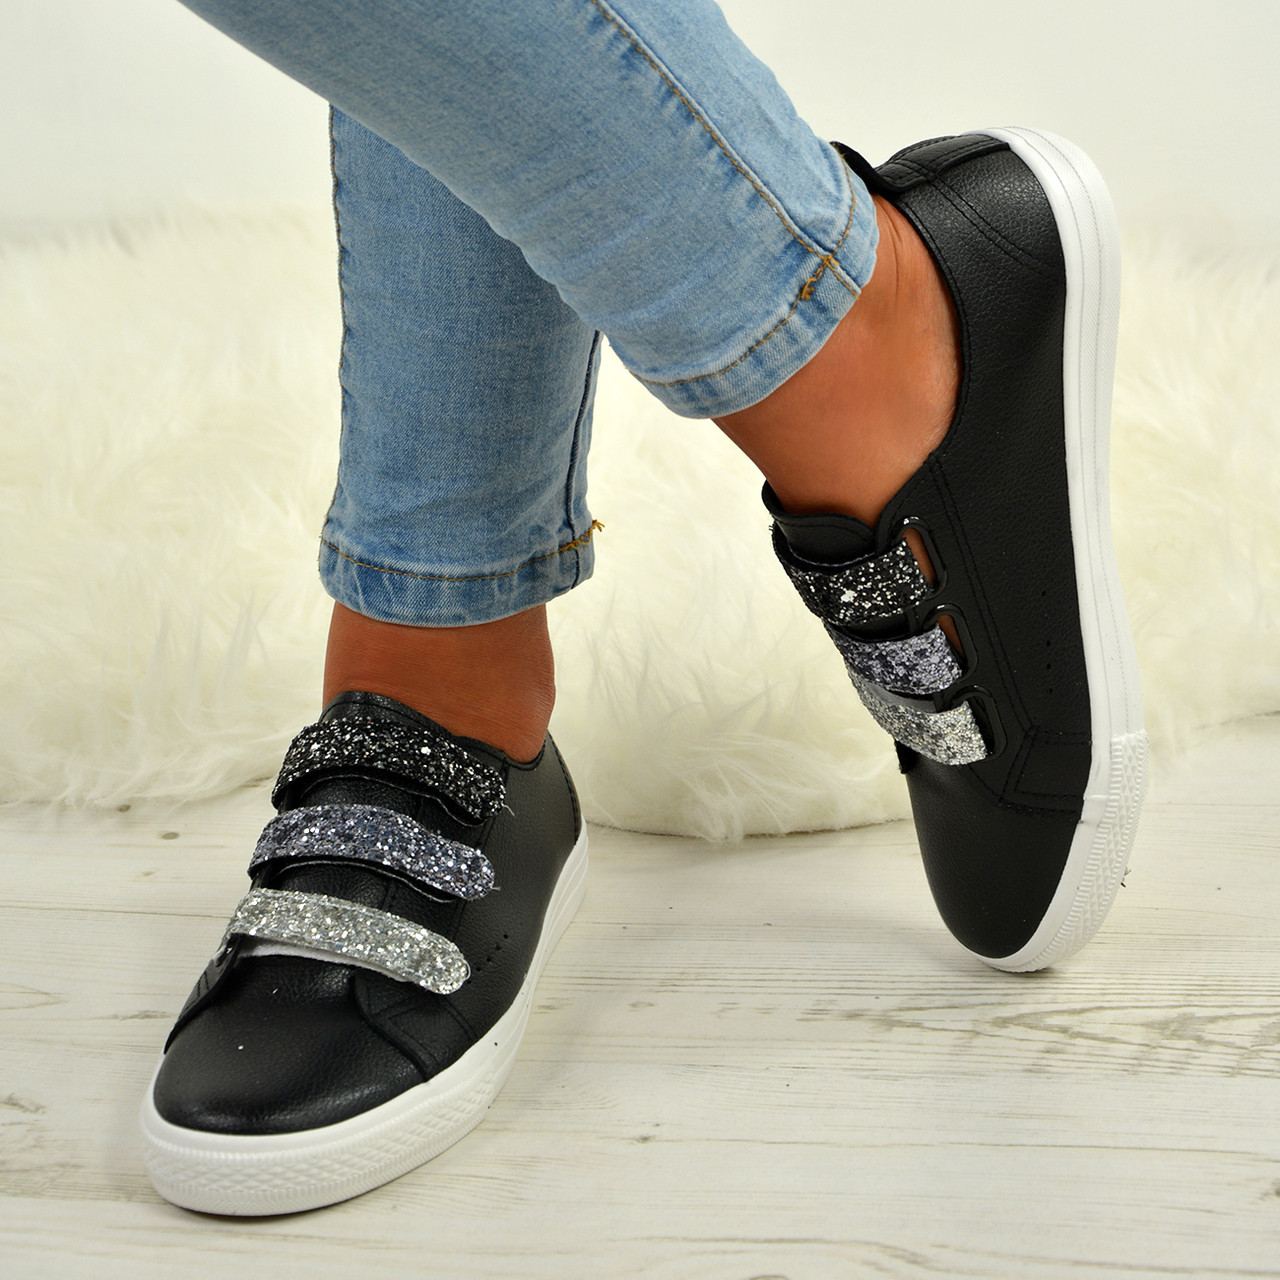 aacca27c1356 Ladies Womens Glitter Sparkle Pumps Trainers Sneakers Plimsoll Casual Comfy  Shoe